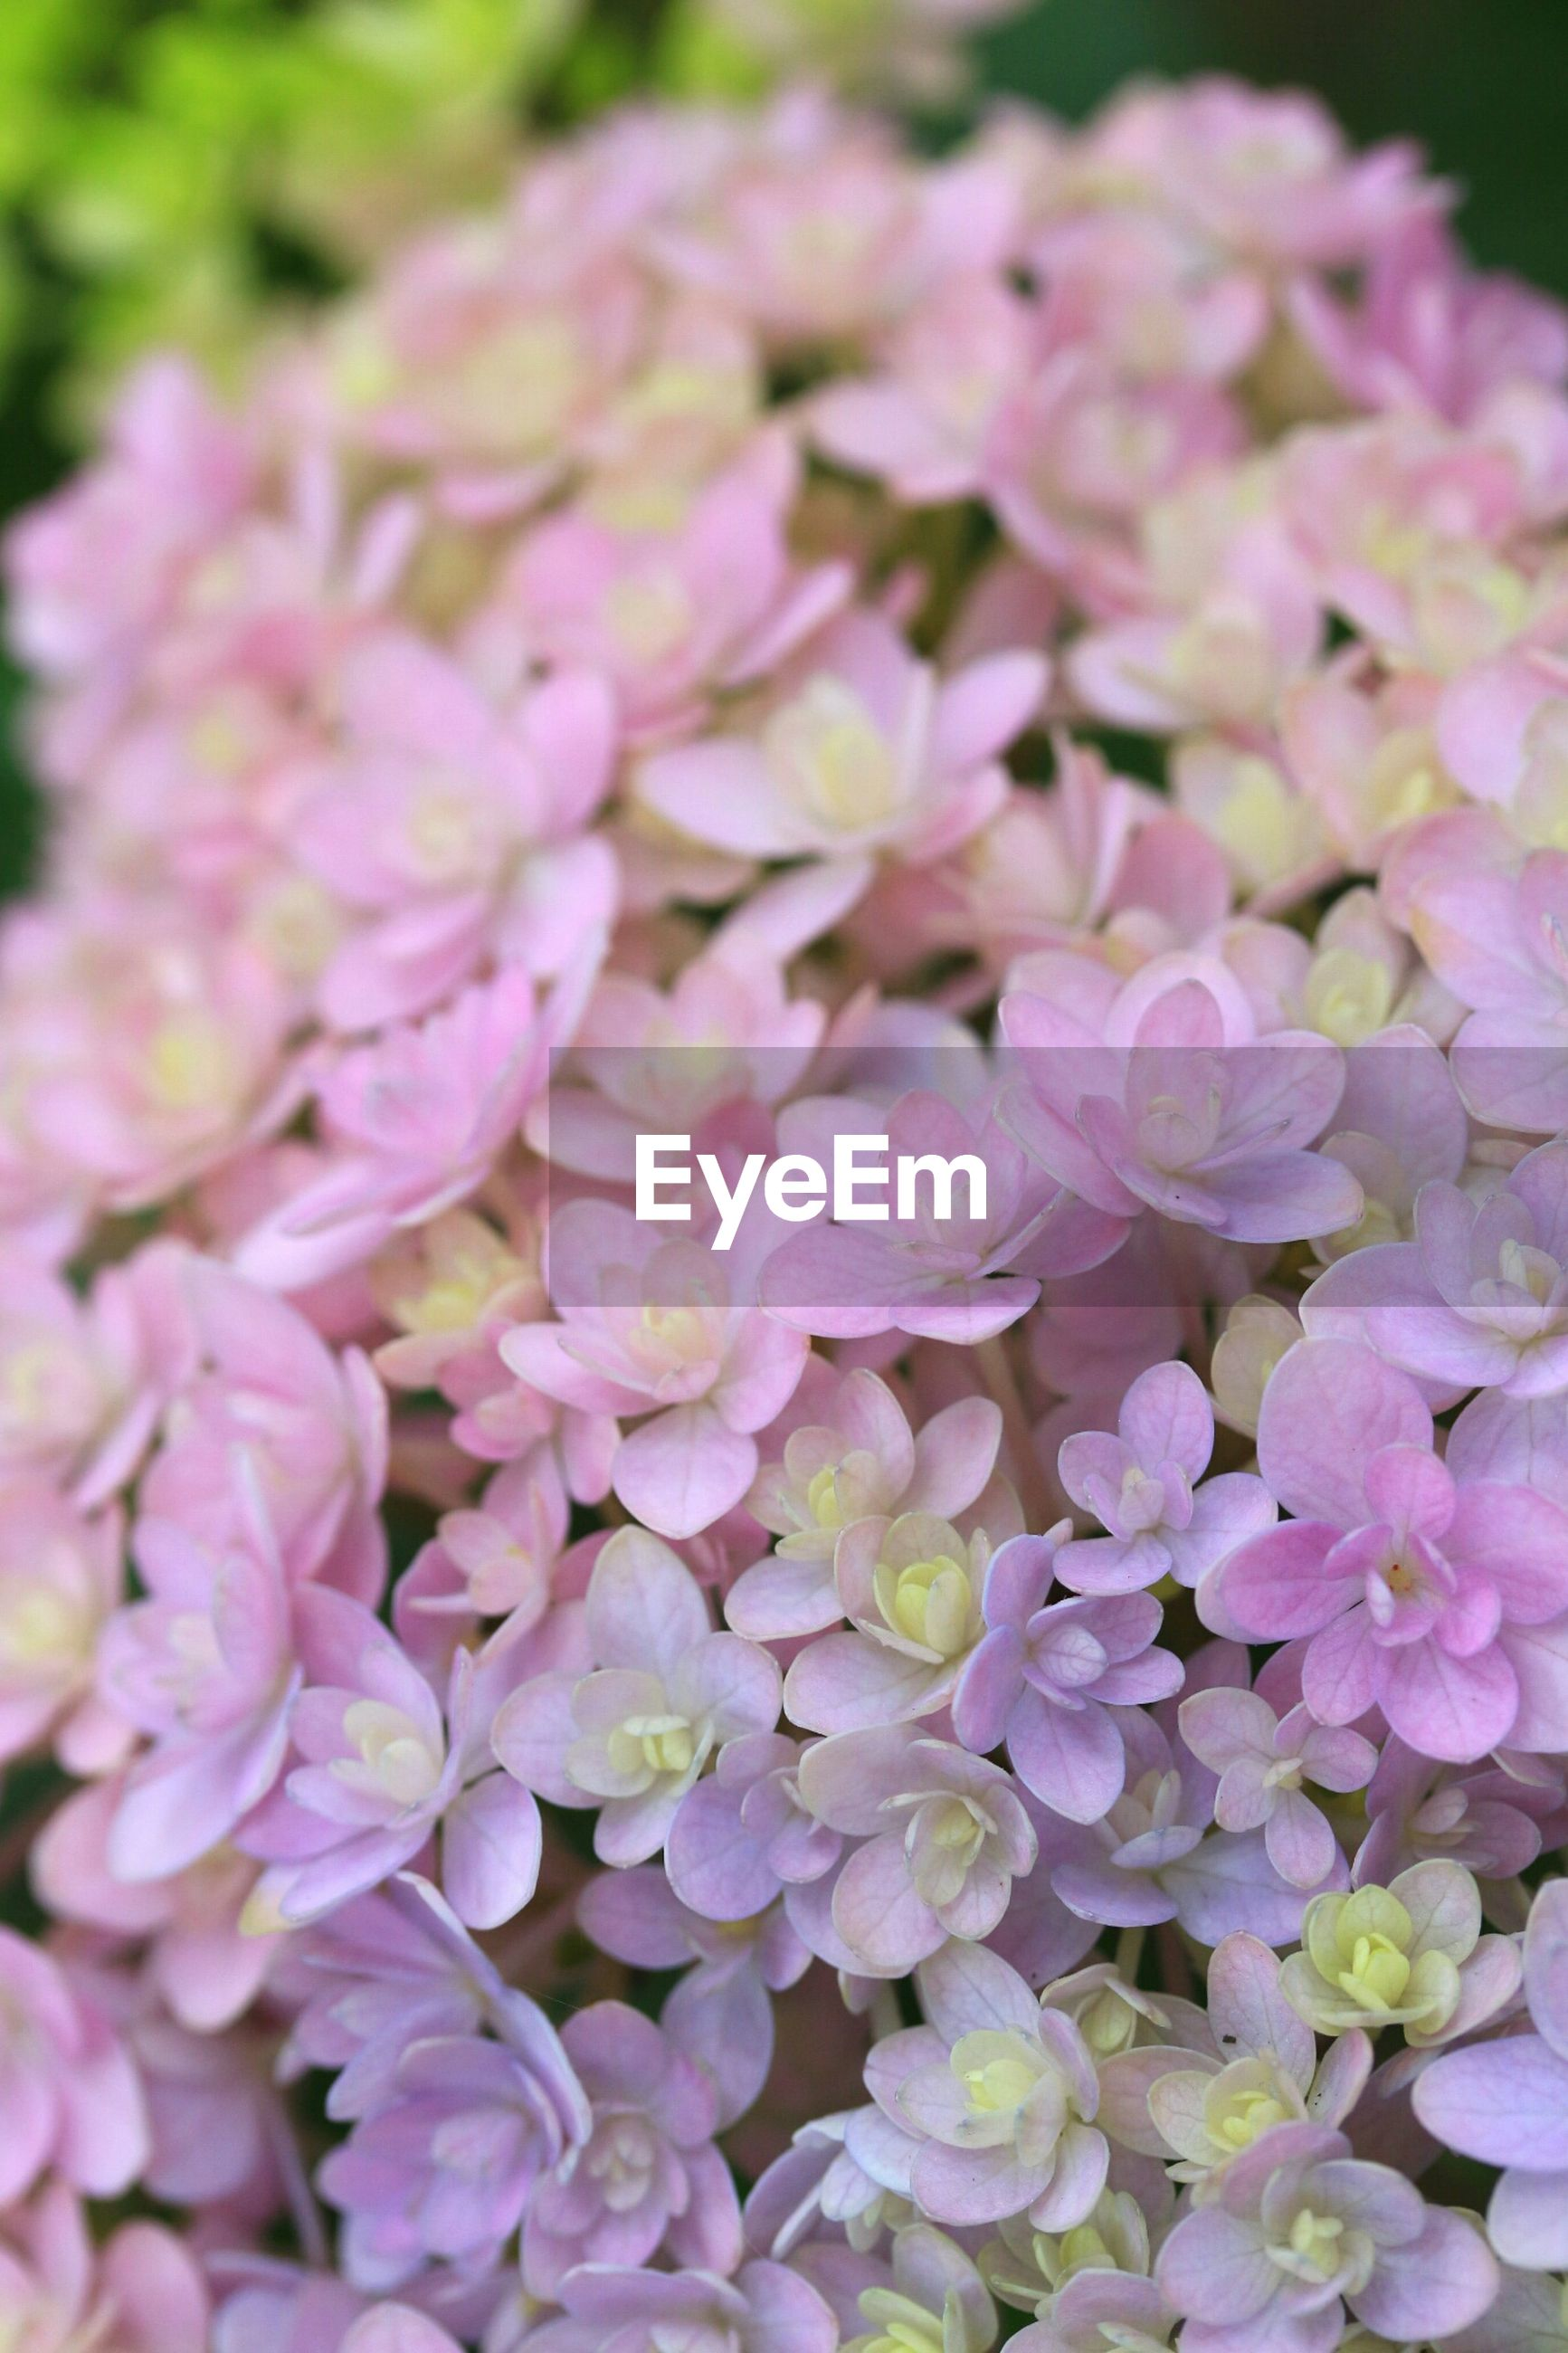 flower, freshness, petal, fragility, beauty in nature, growth, flower head, pink color, nature, blooming, close-up, plant, focus on foreground, in bloom, selective focus, park - man made space, outdoors, pink, blossom, botany